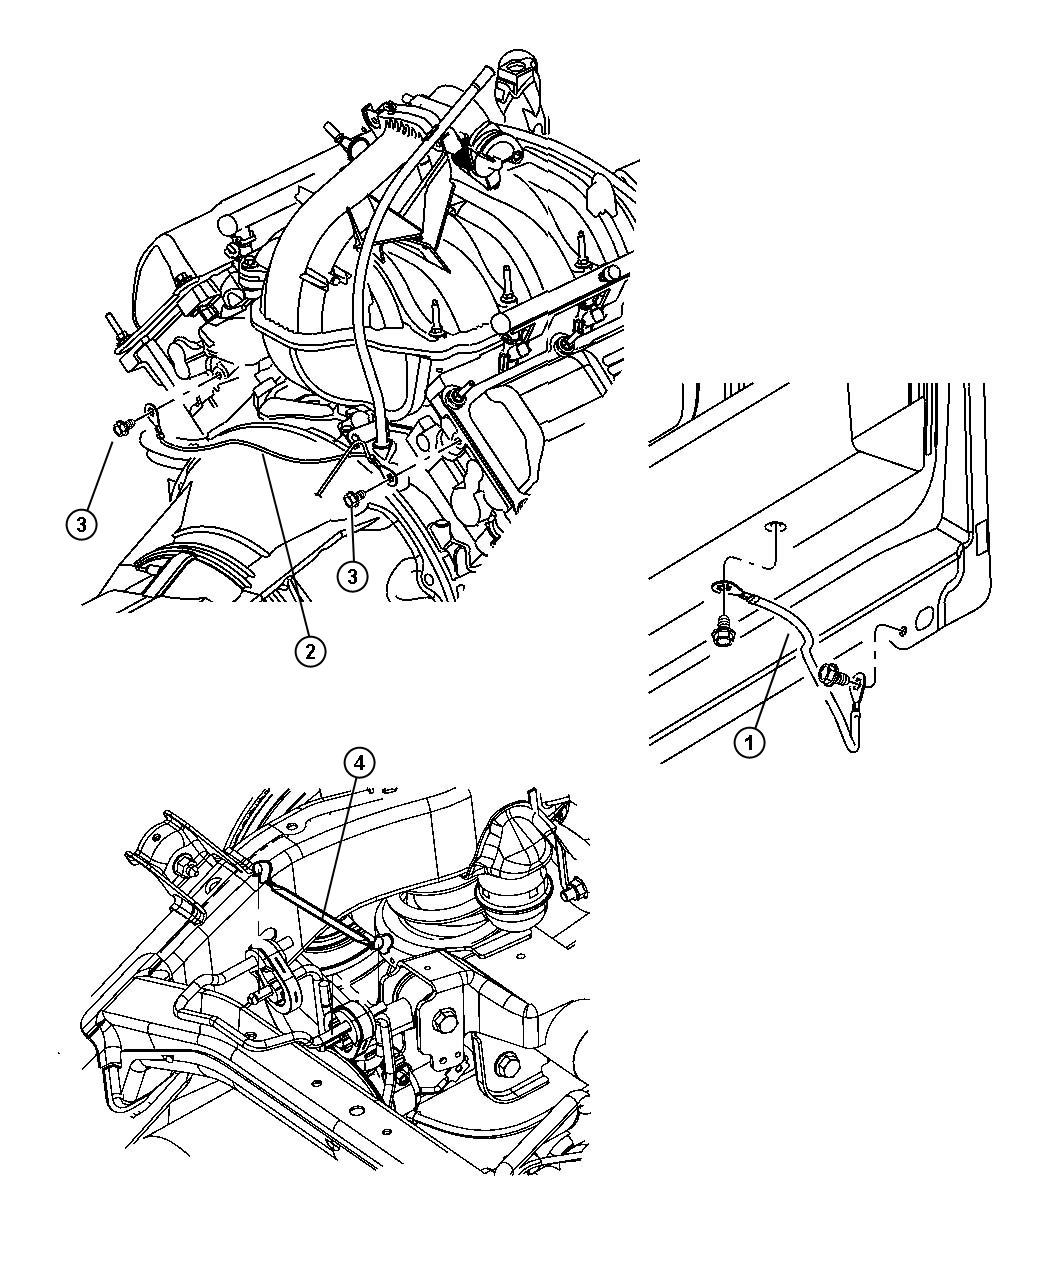 Ram 3500 Strap. Ground. Frame to body, frame to body after